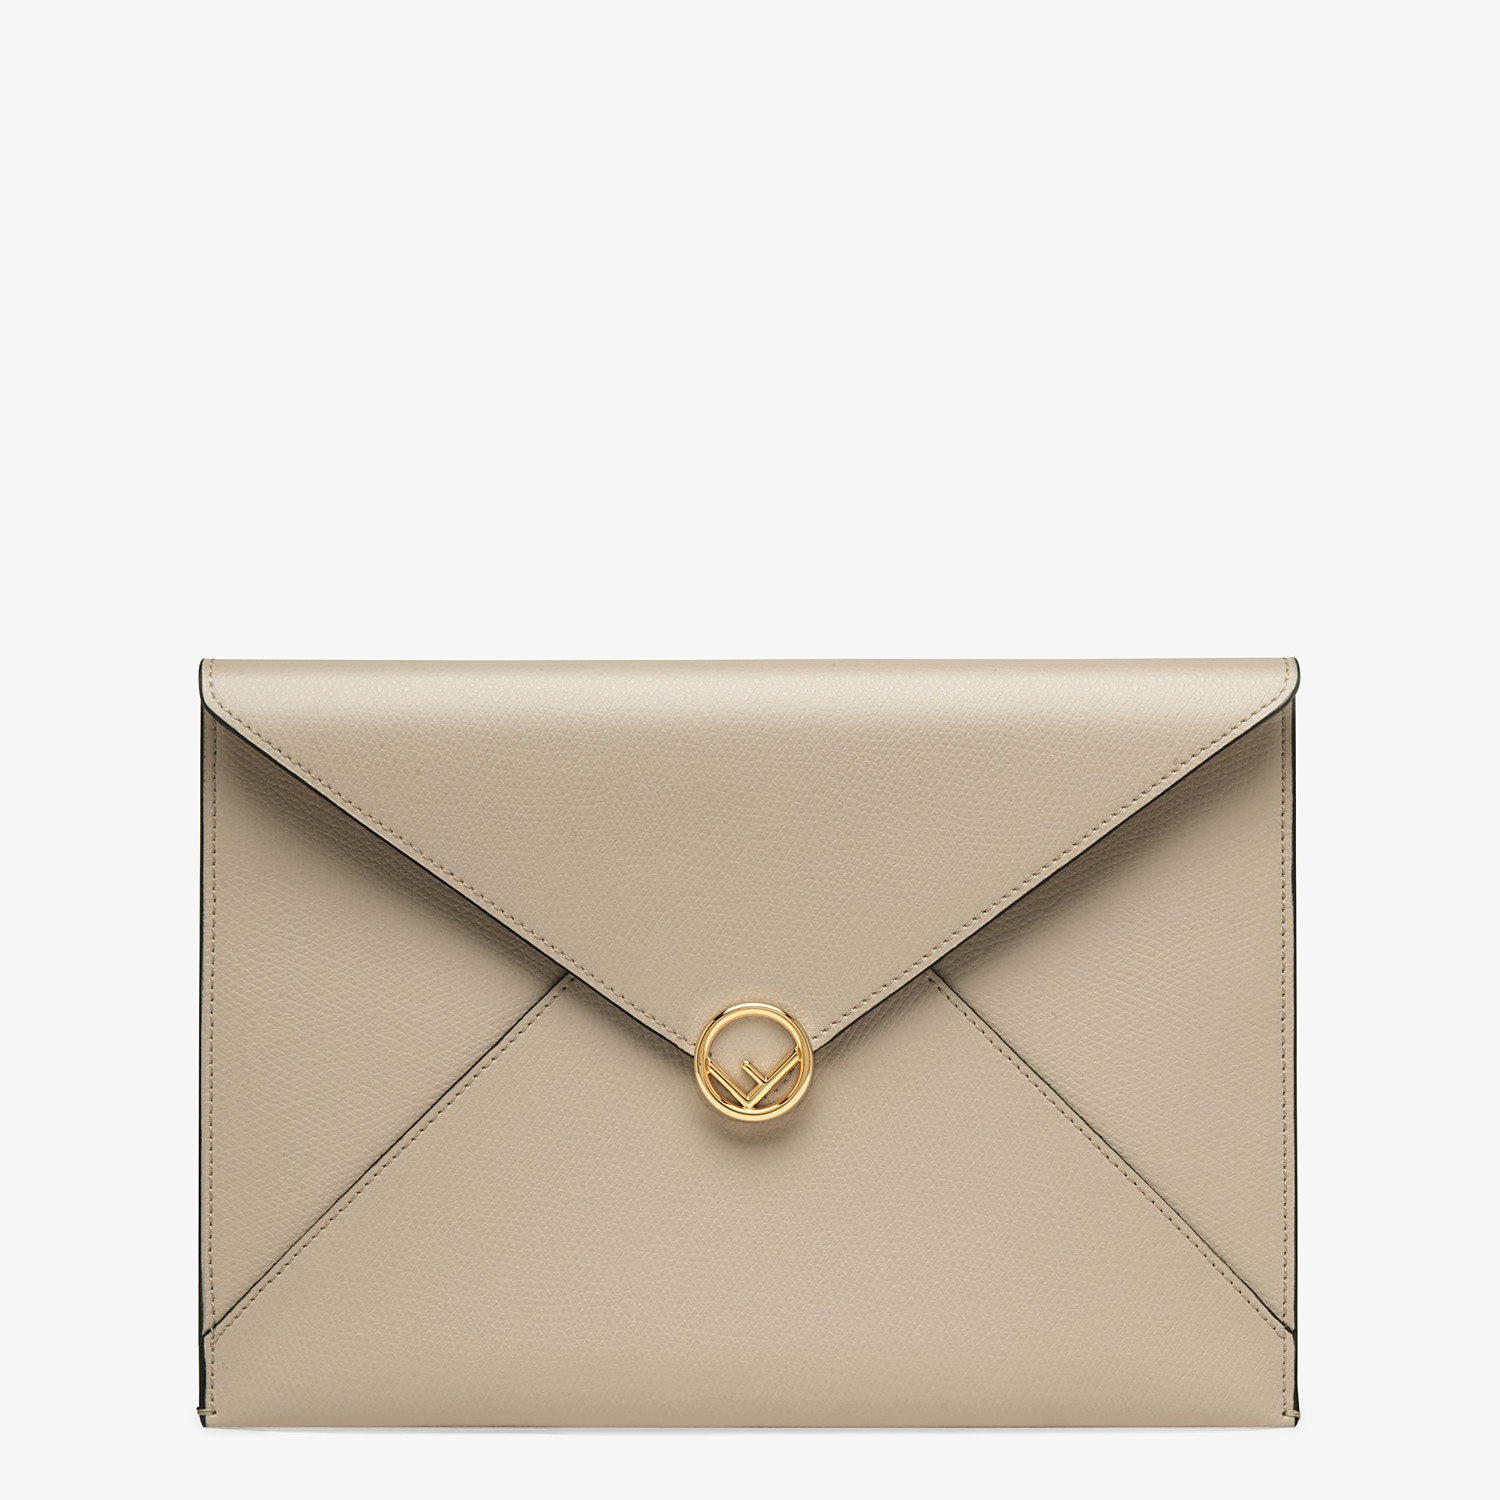 FENDI FLAT POUCH LARGE - Beige leather pouch - view 1 detail